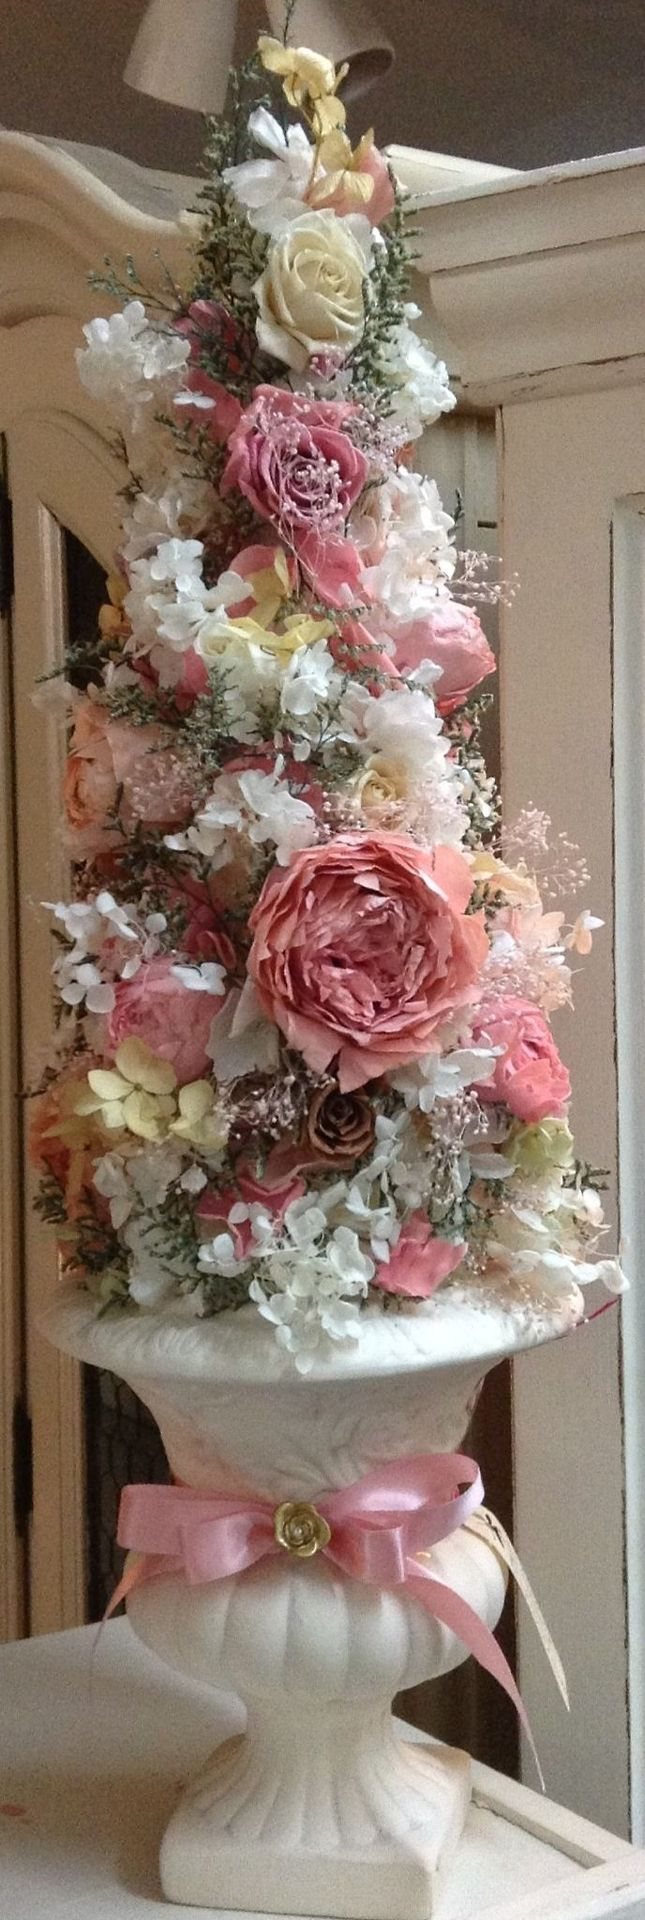 Romantic Cottage-- LARGE cone styrofoam in white pot. glue silk roses and filler flowers to match decor. would use just pink and cream/ivory roses, keep simple